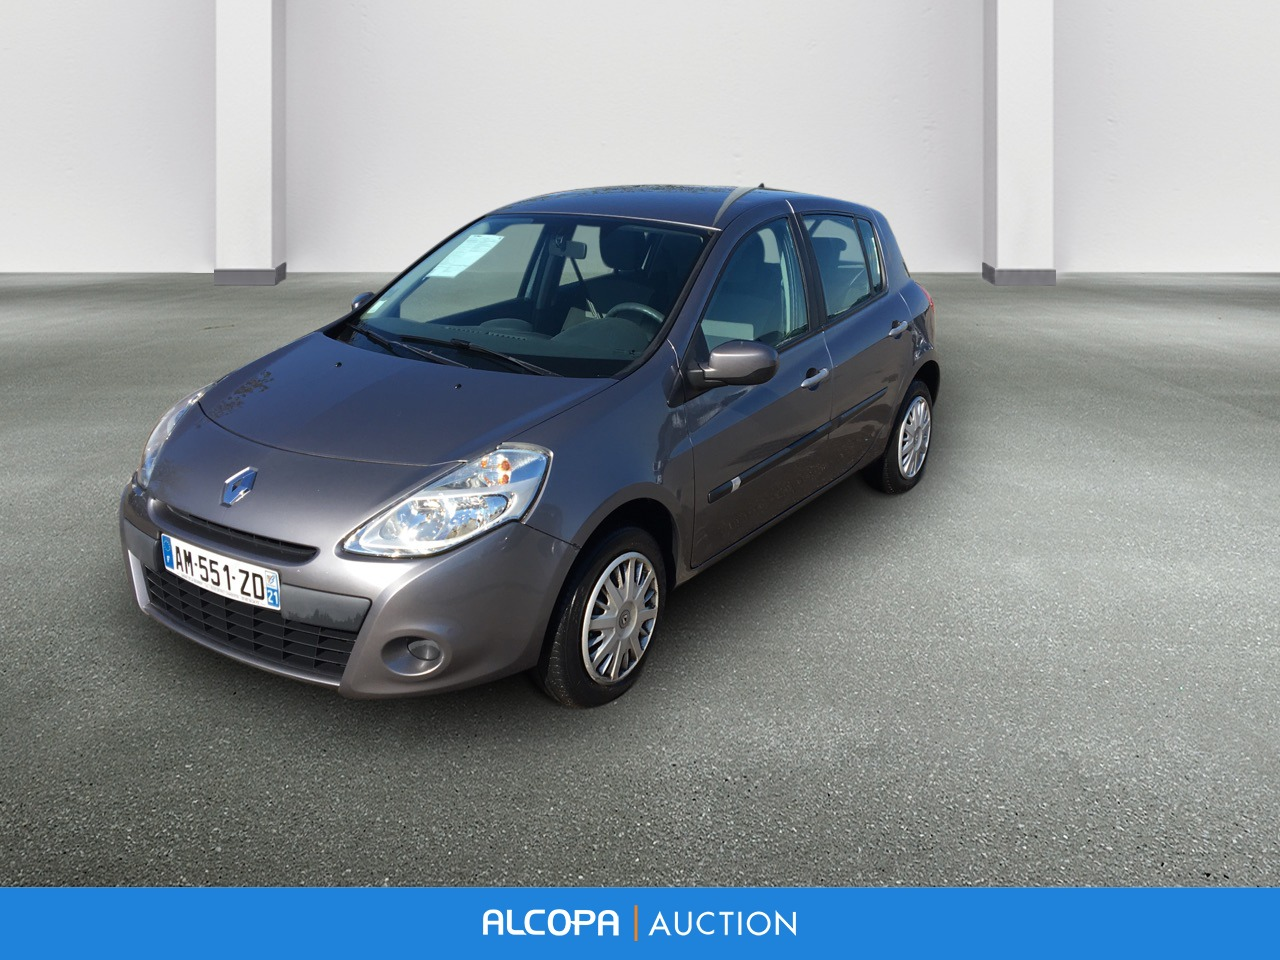 renault clio iii clio iii dci 70 eco2 expression alcopa auction. Black Bedroom Furniture Sets. Home Design Ideas